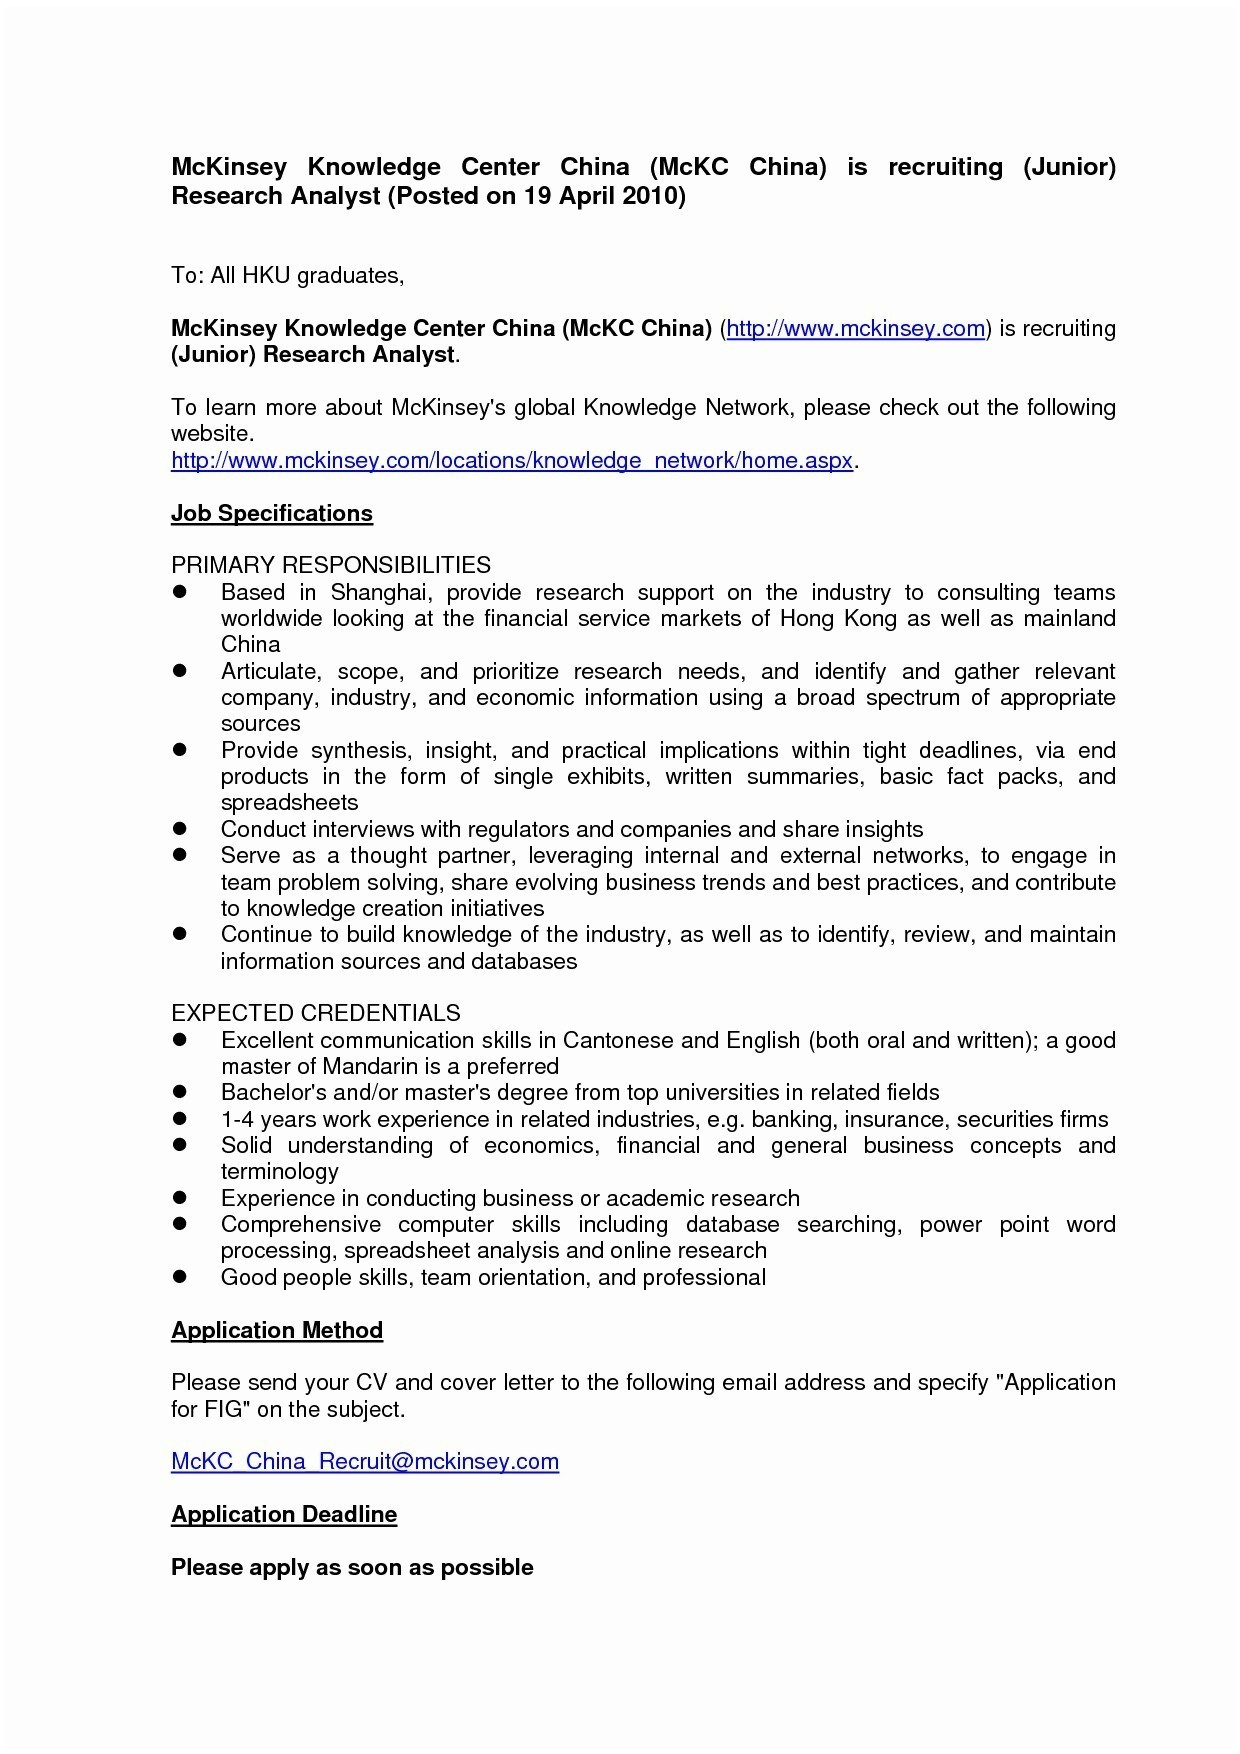 Renters Insurance Letter Template - Cover Letter to Consultant for Job Refrence Inspirational Job Fer